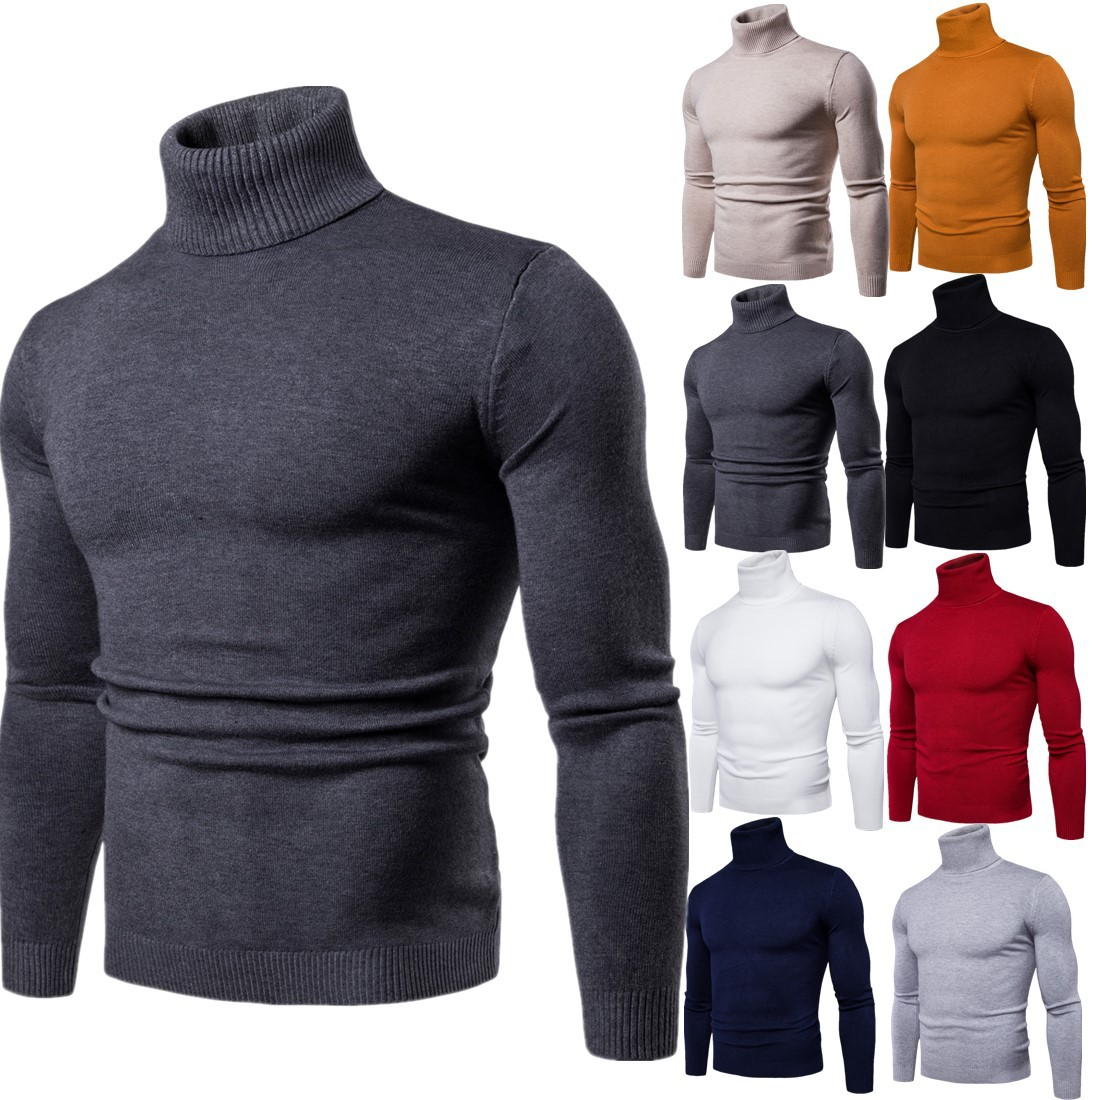 FAVOCENT Winter Warm Turtleneck Sweater Men Fashion Solid Knitted Mens Sweaters 2018 Casual Male Double Collar Slim Fit Pullover(China)